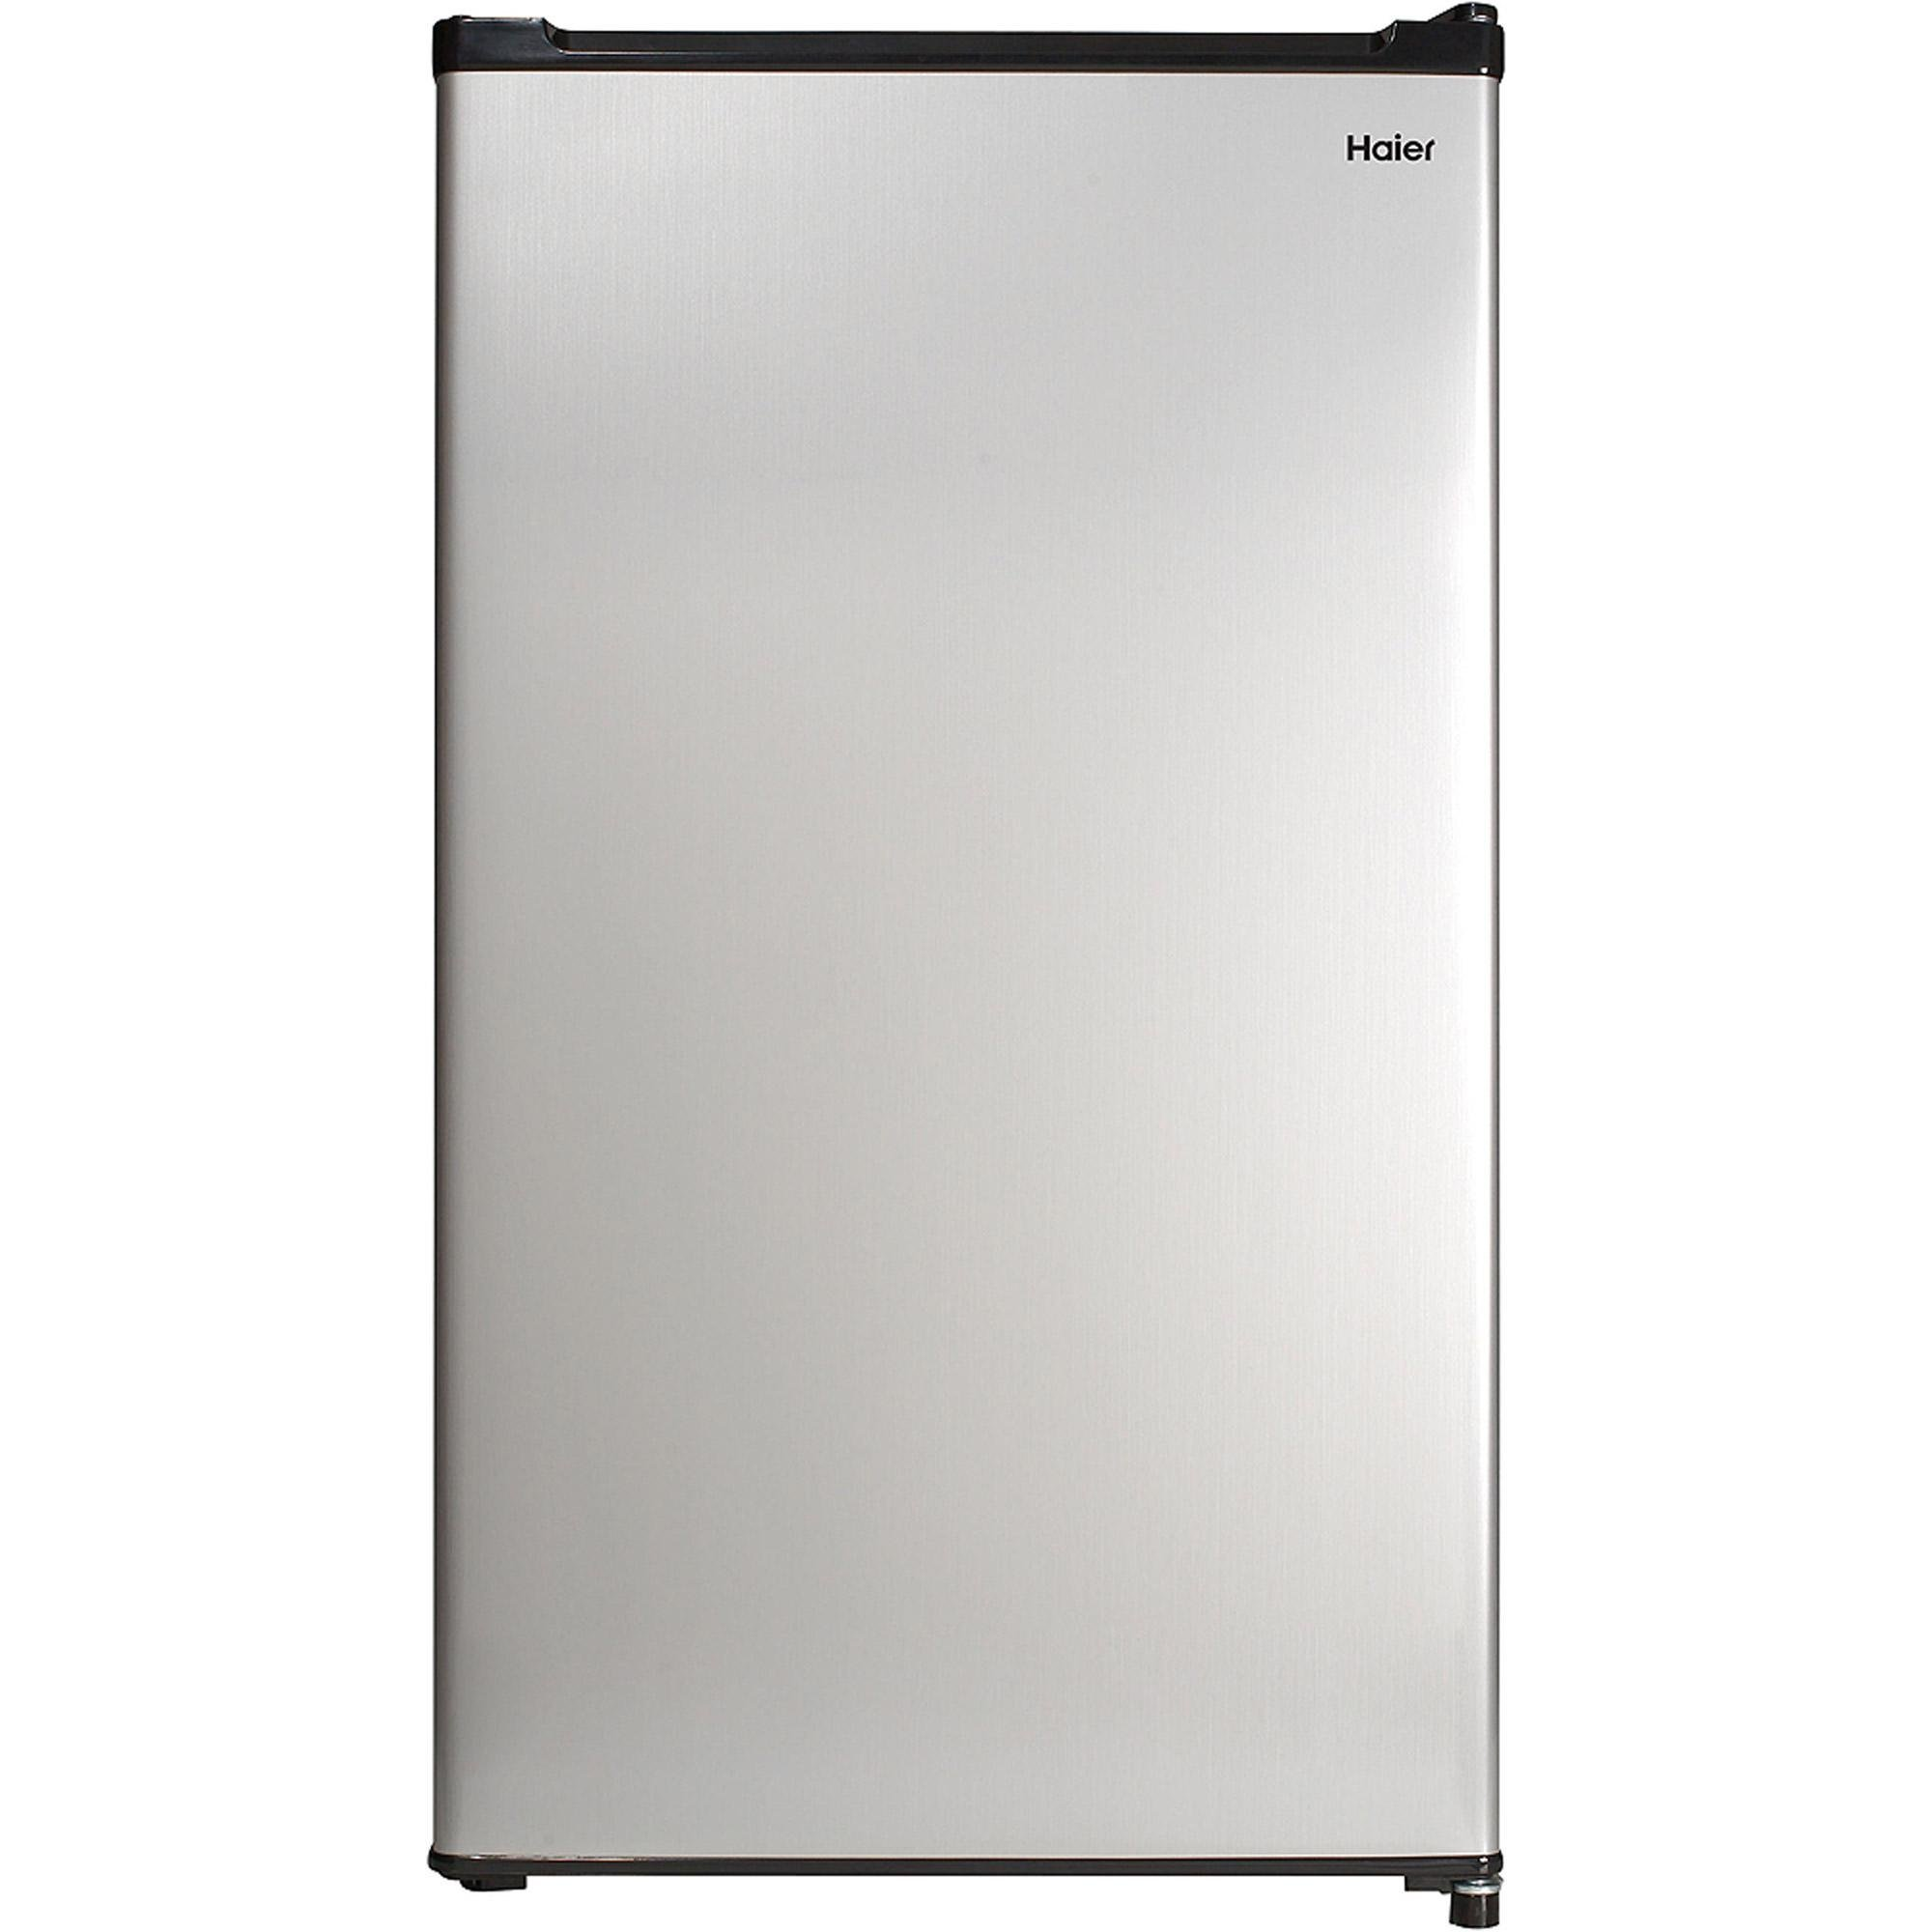 Haier HC27SW20RV 2 7 Refrigerator Virtual